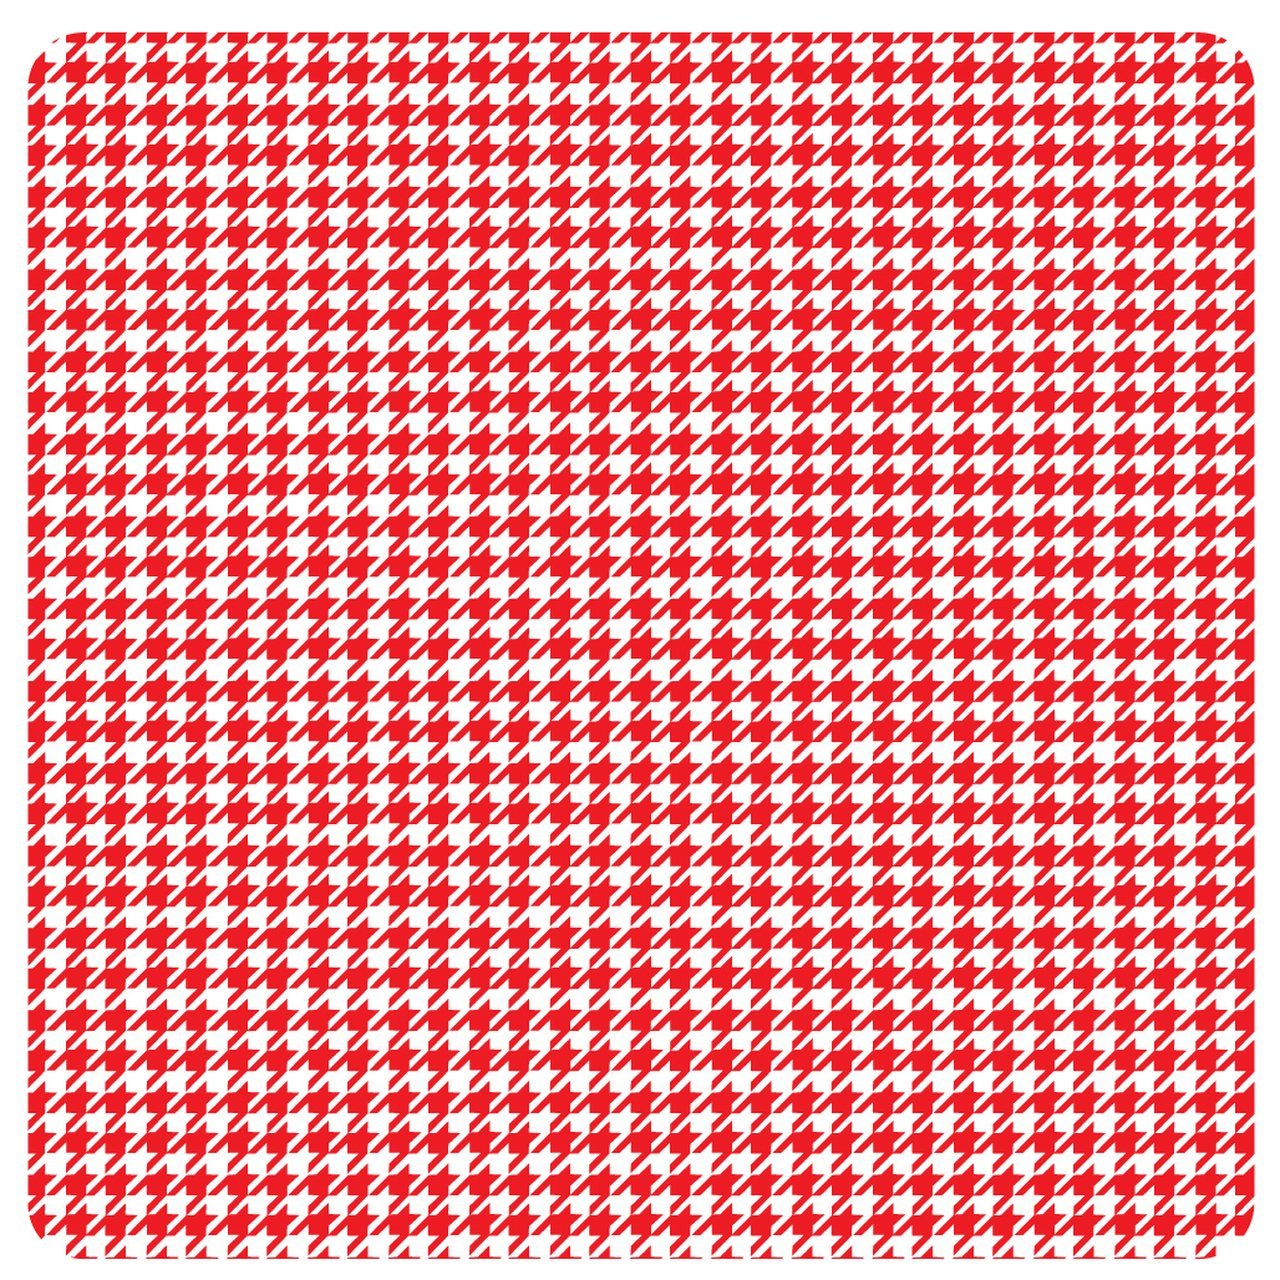 Red and White Houndstooth Adhesive 12 x 14